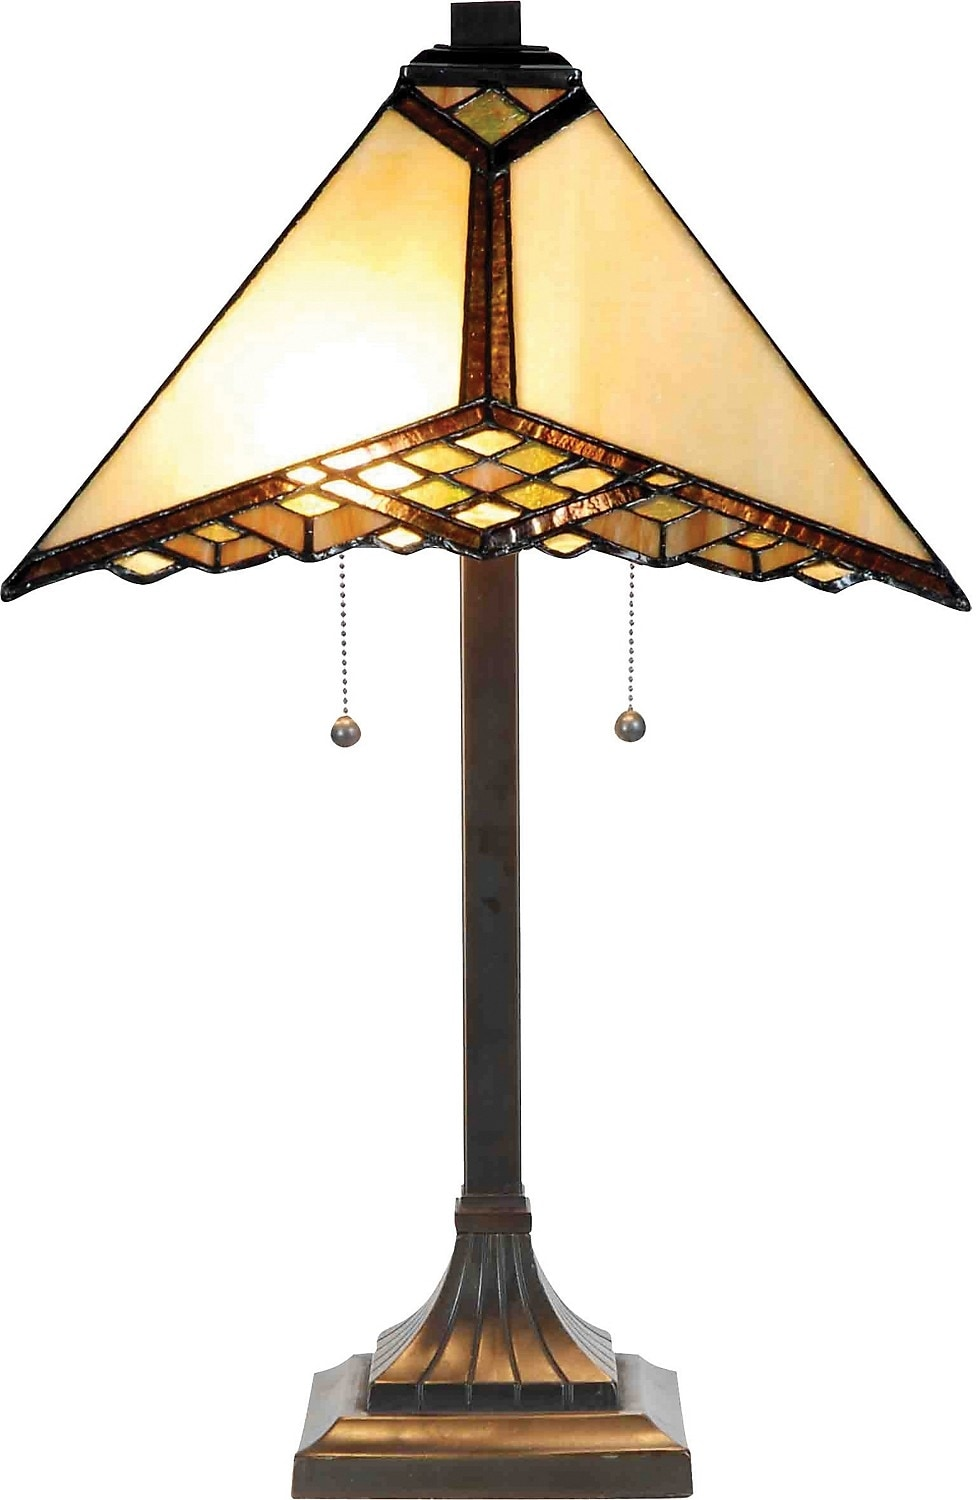 Hamilton Table Lamp with Stained Glass Shade